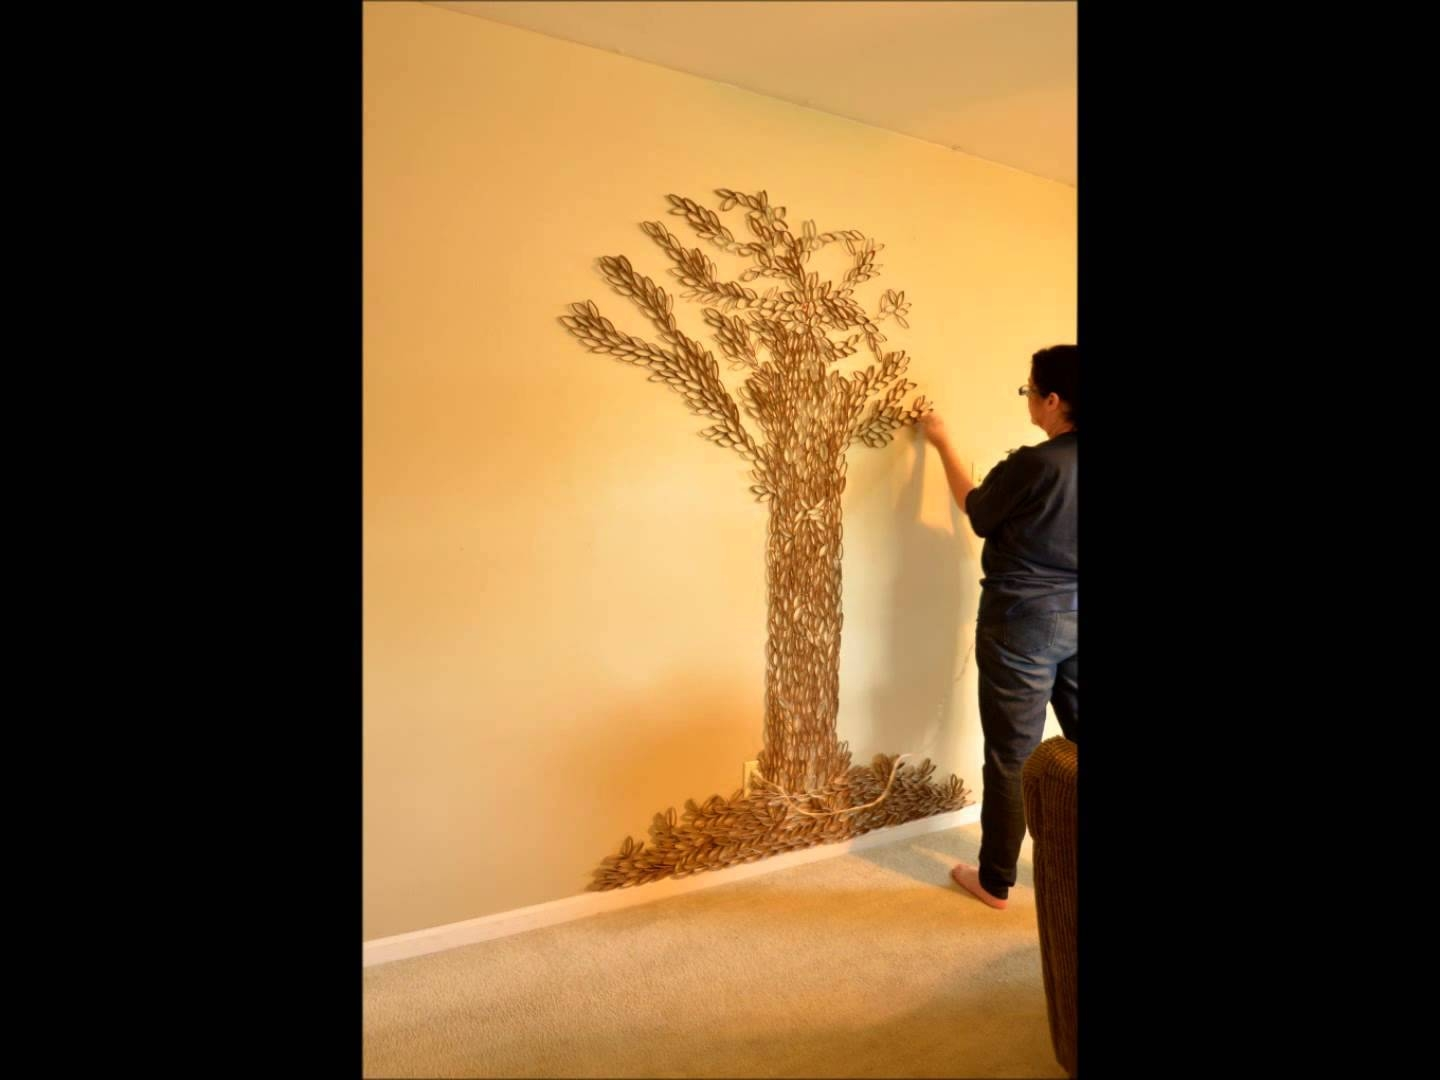 Tree Of Life Wall Art – 7ft Paper Roll Sculpture In 1 Minute With Latest Tree Sculpture Wall Art (View 5 of 20)